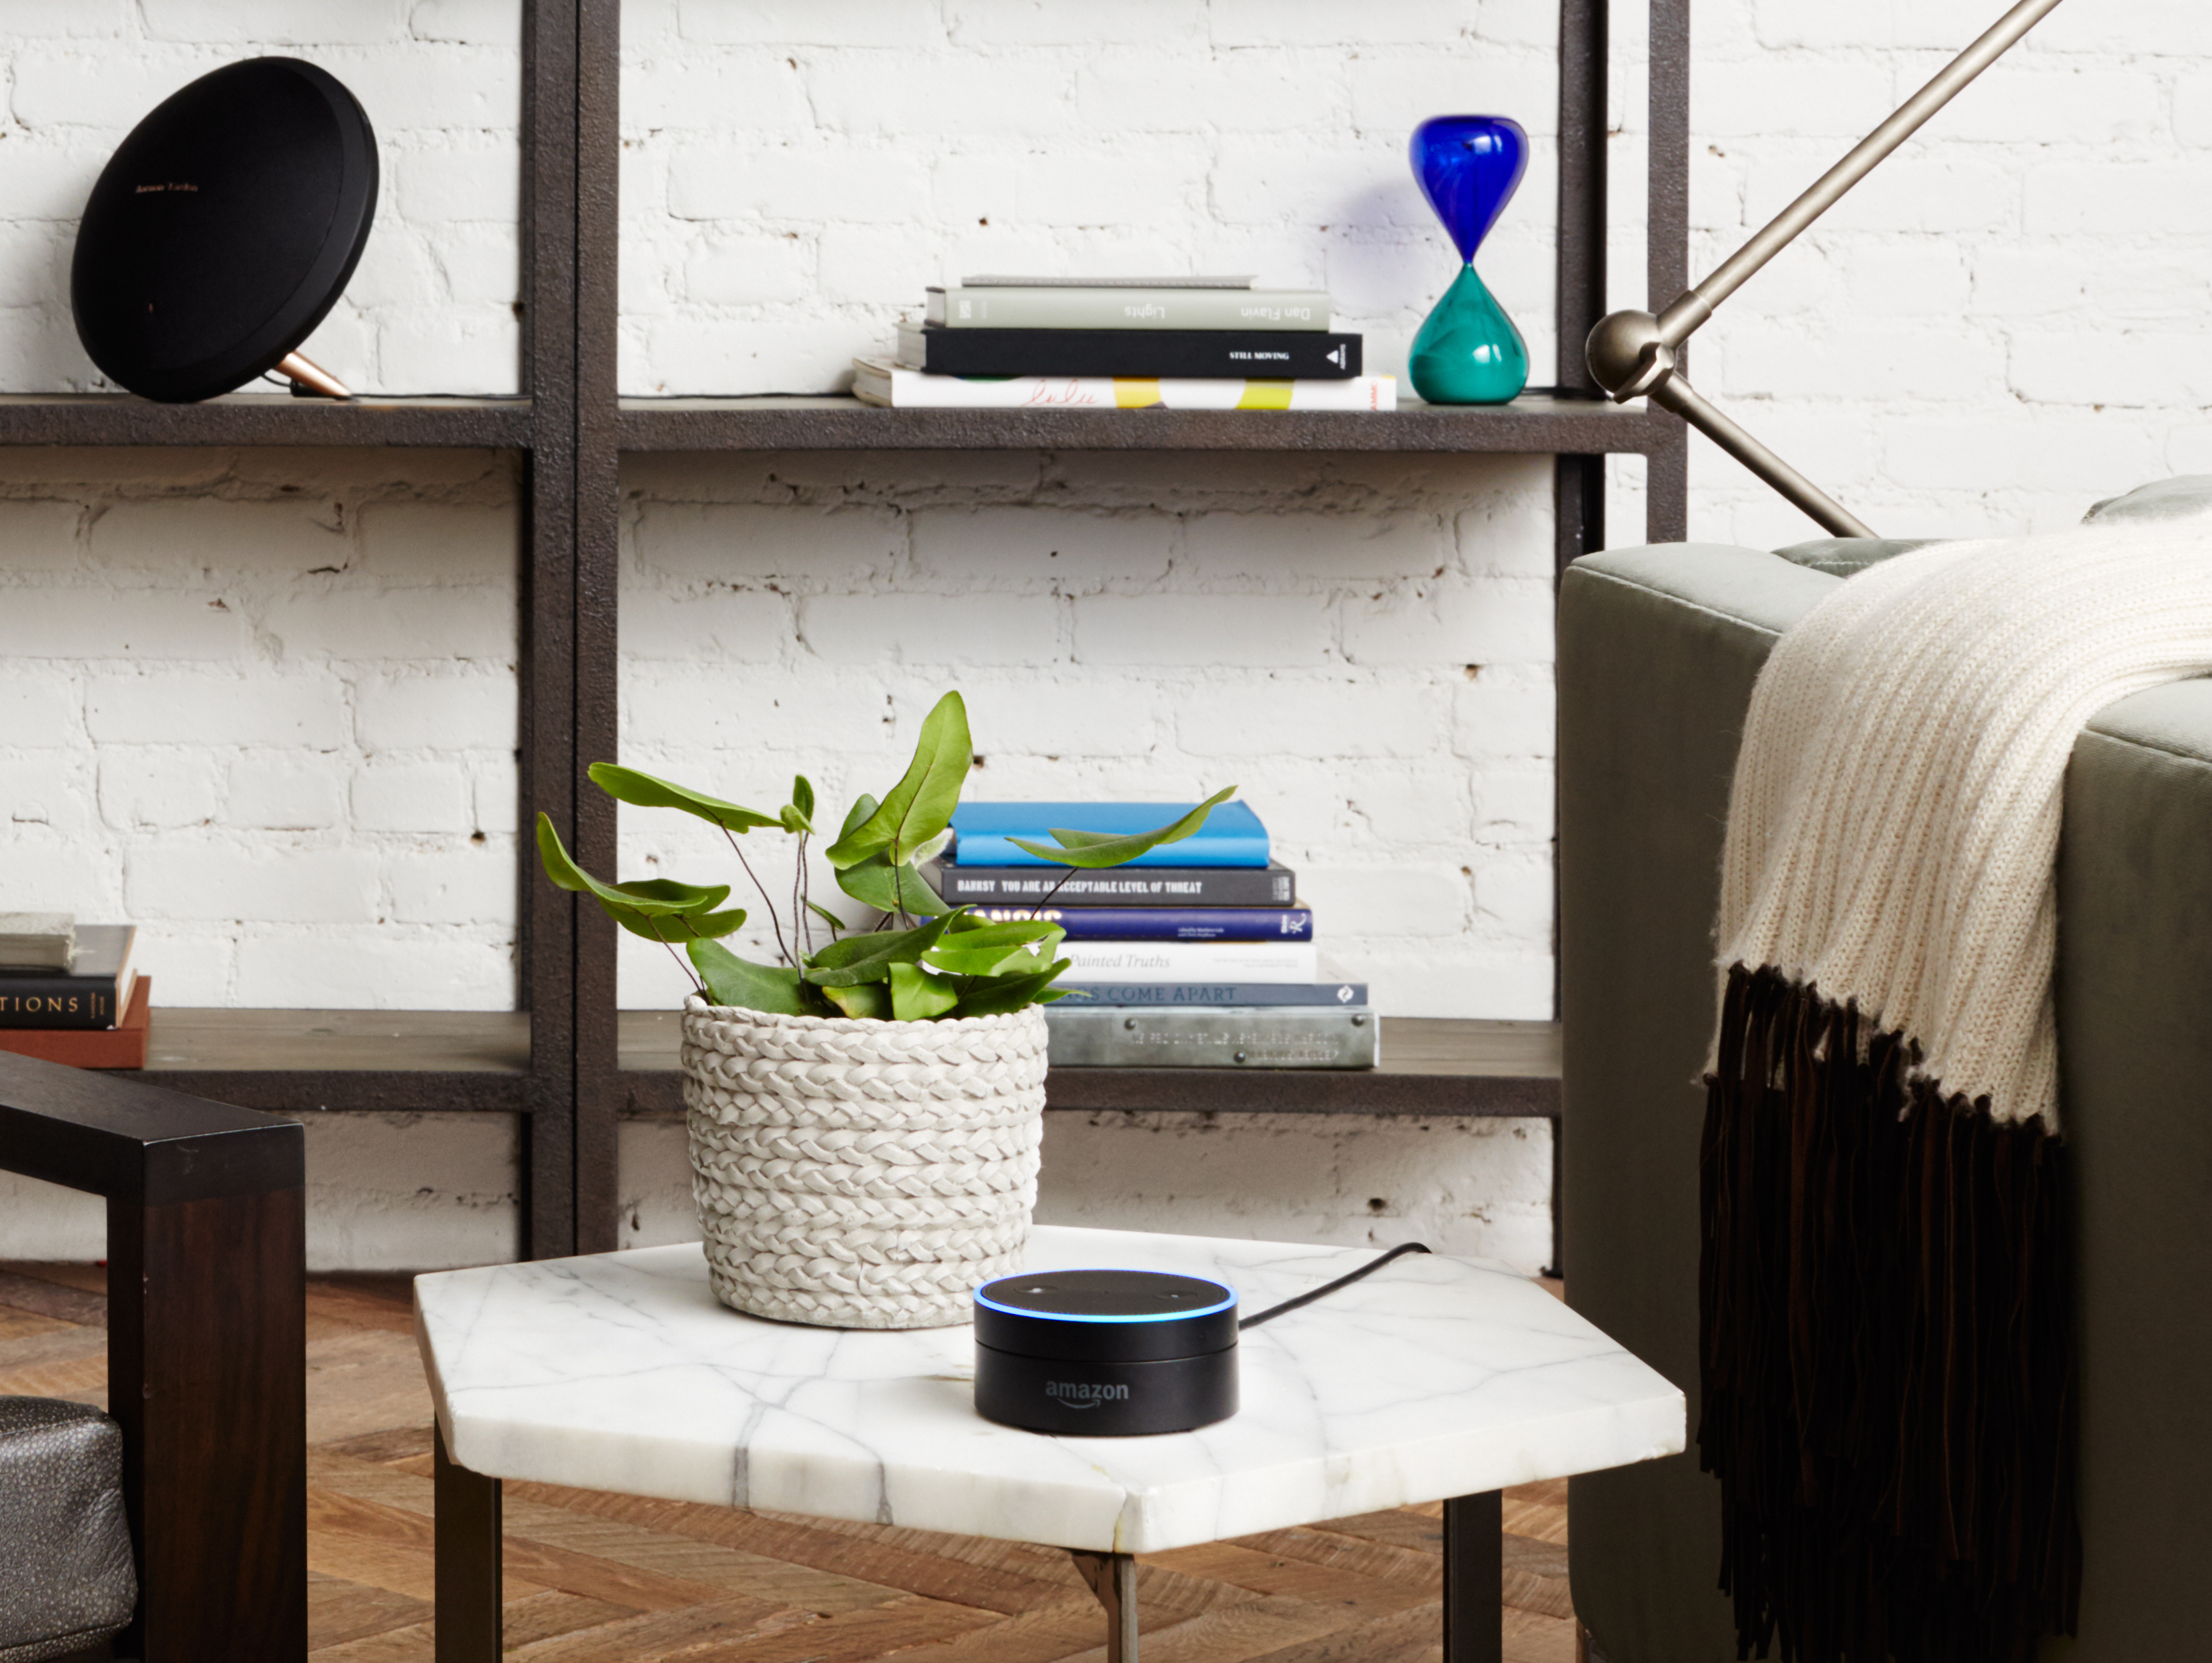 amazon-echo-alexa-dot-roundup-hero.jpg